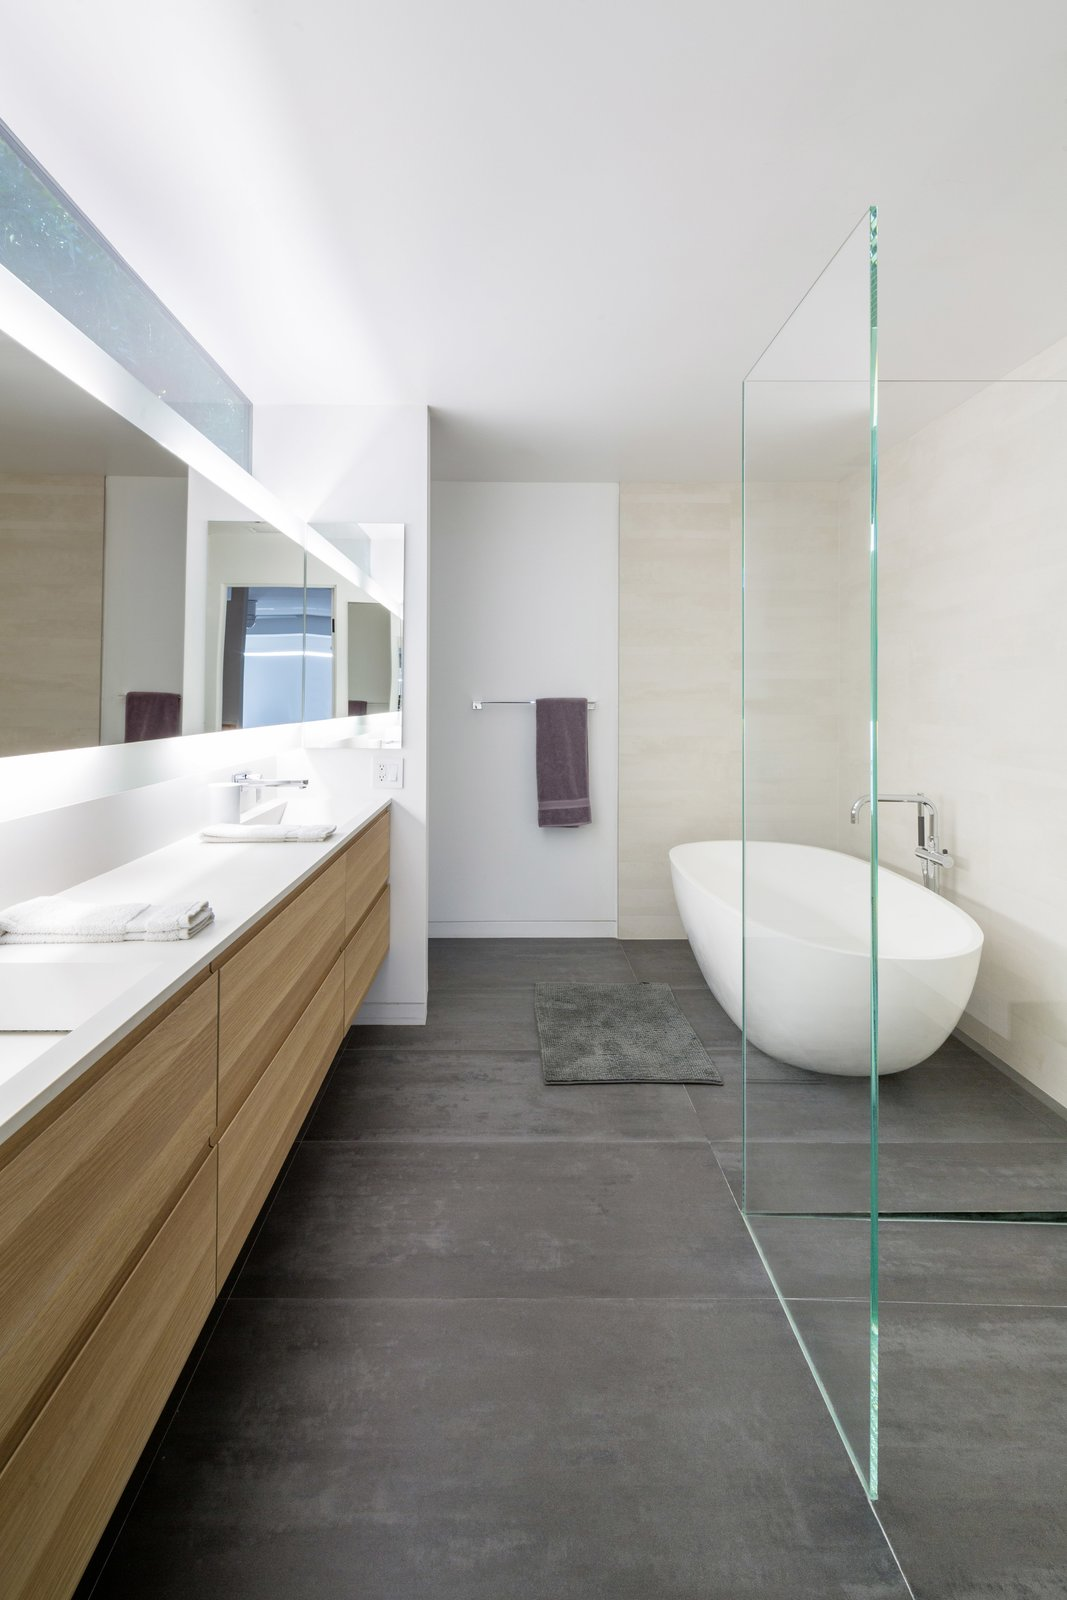 #danbrunn #no9dream #residence #losangeles #california #bathroom #bathtub #glass #interior #renovation